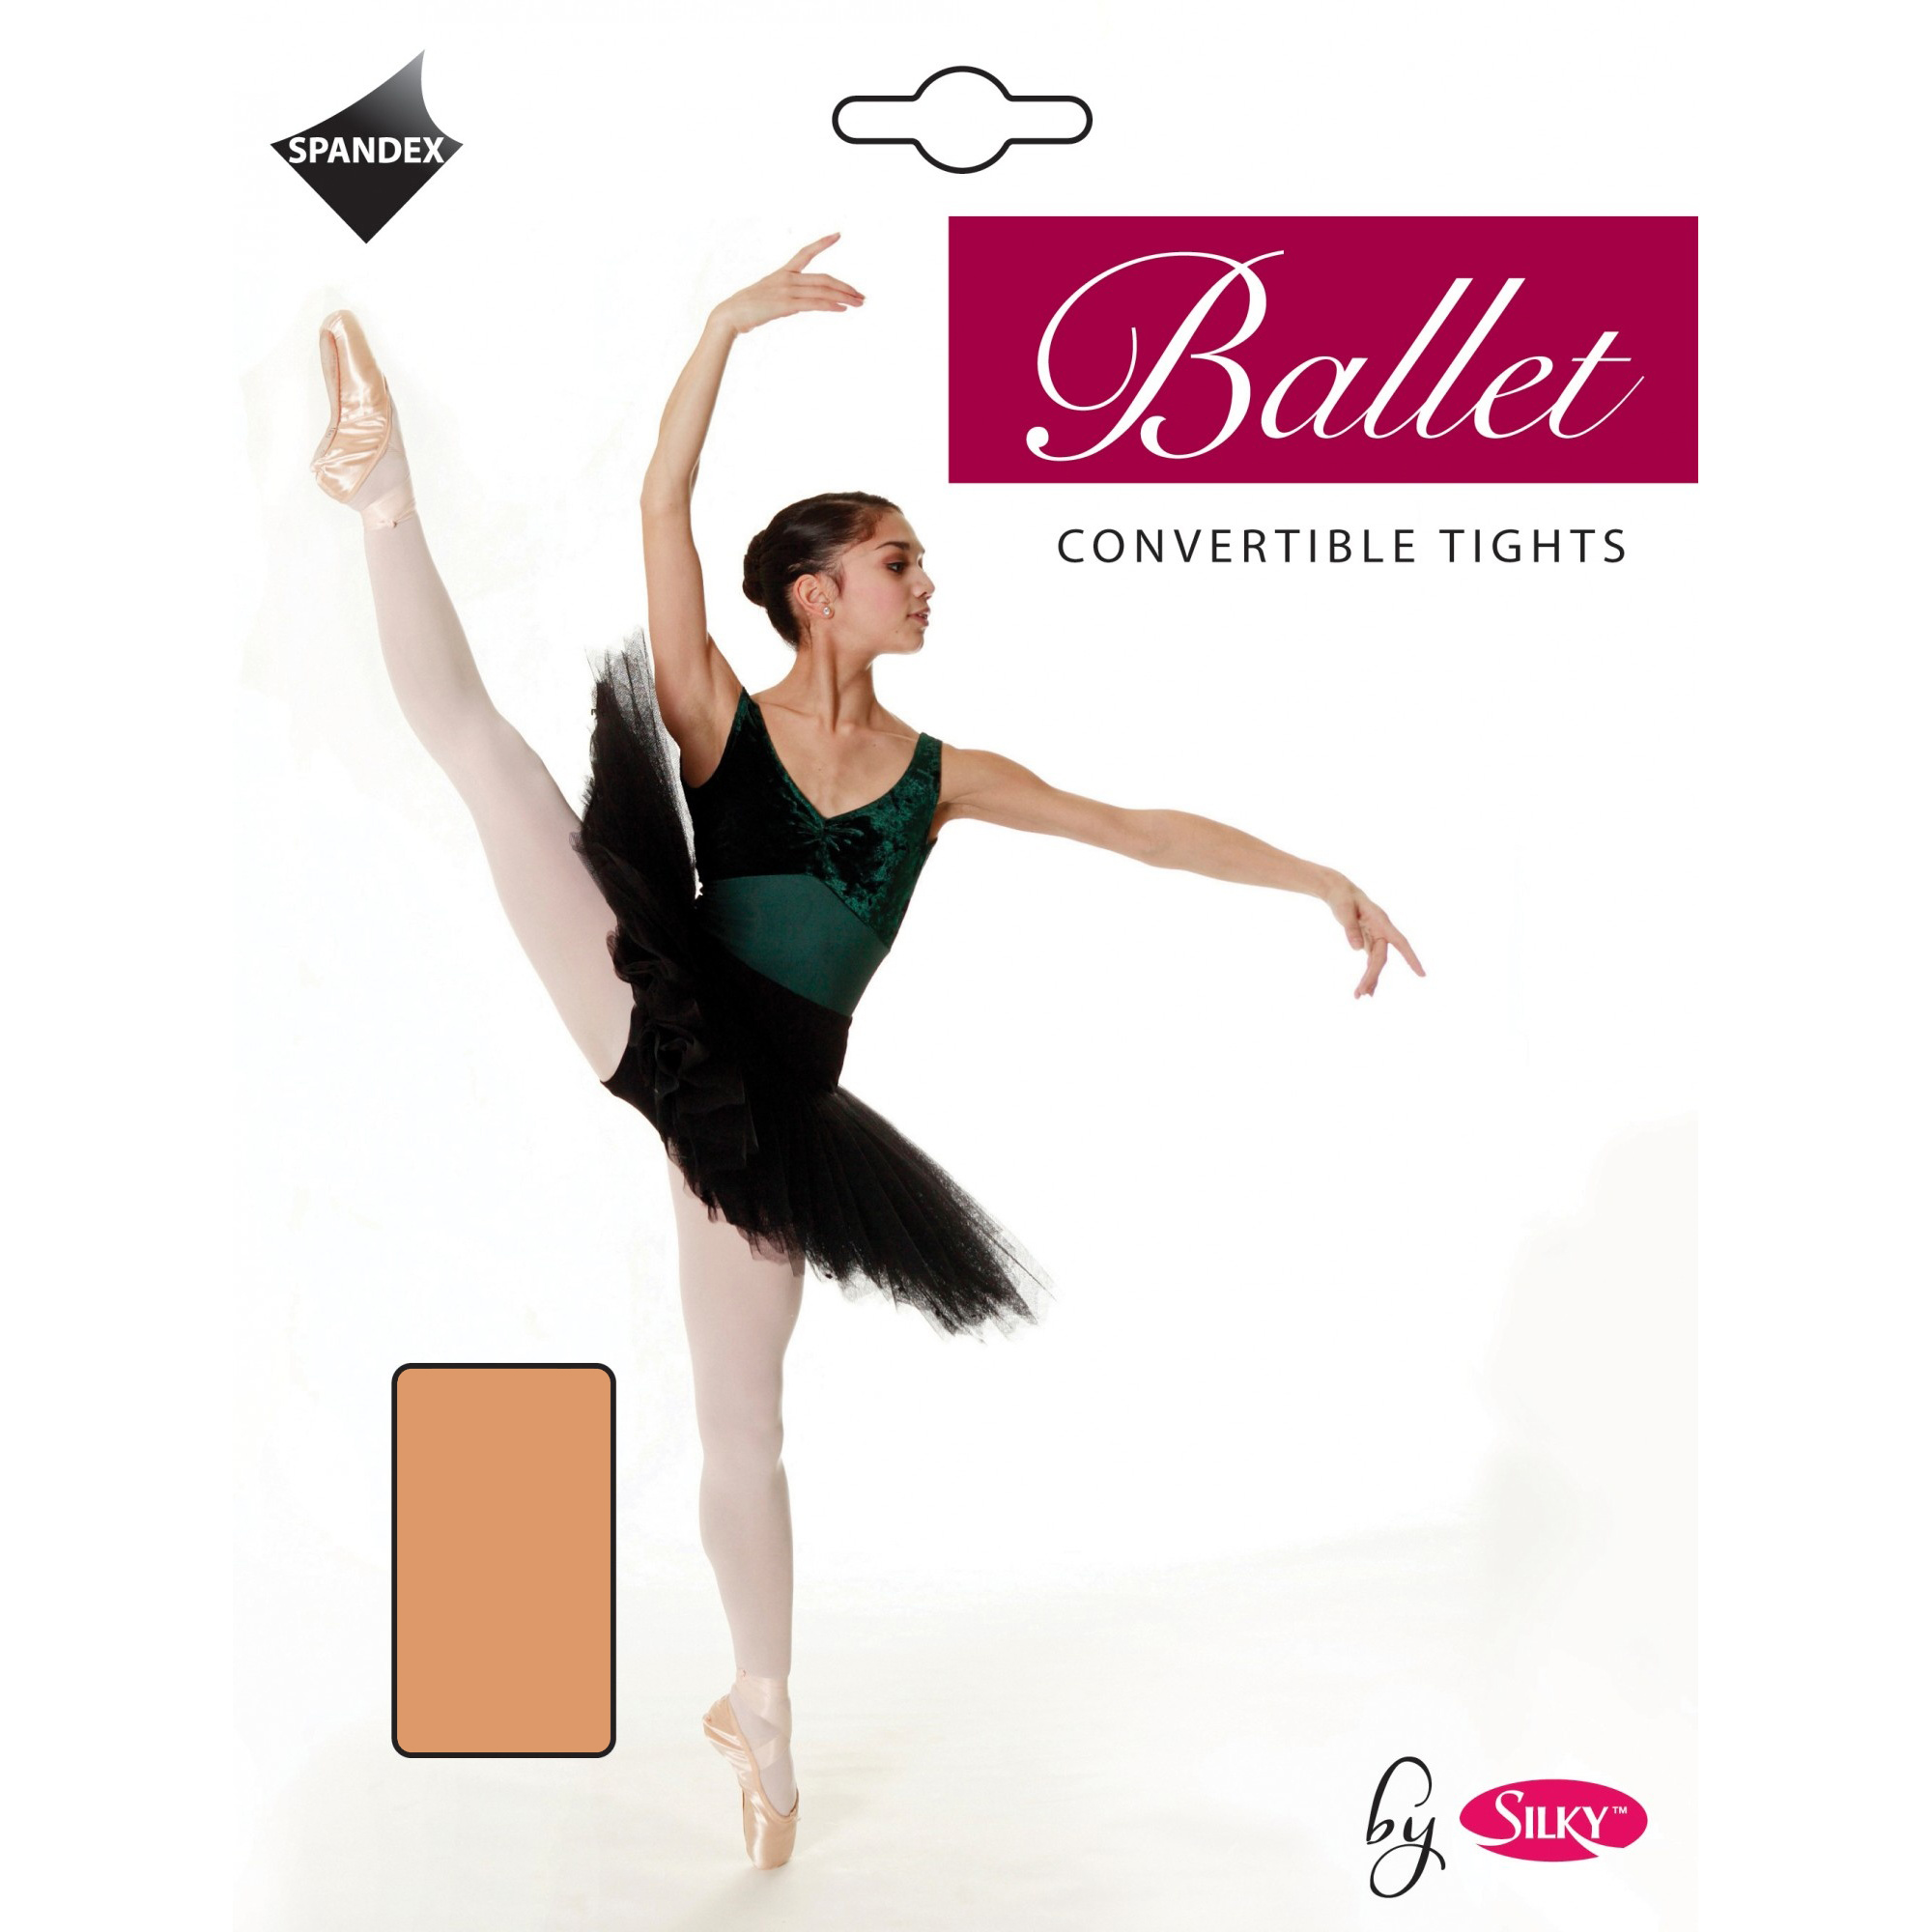 Childrens Tan Age 3//5 yrs Silky Full Foot Spandex Ballet Dance Tights